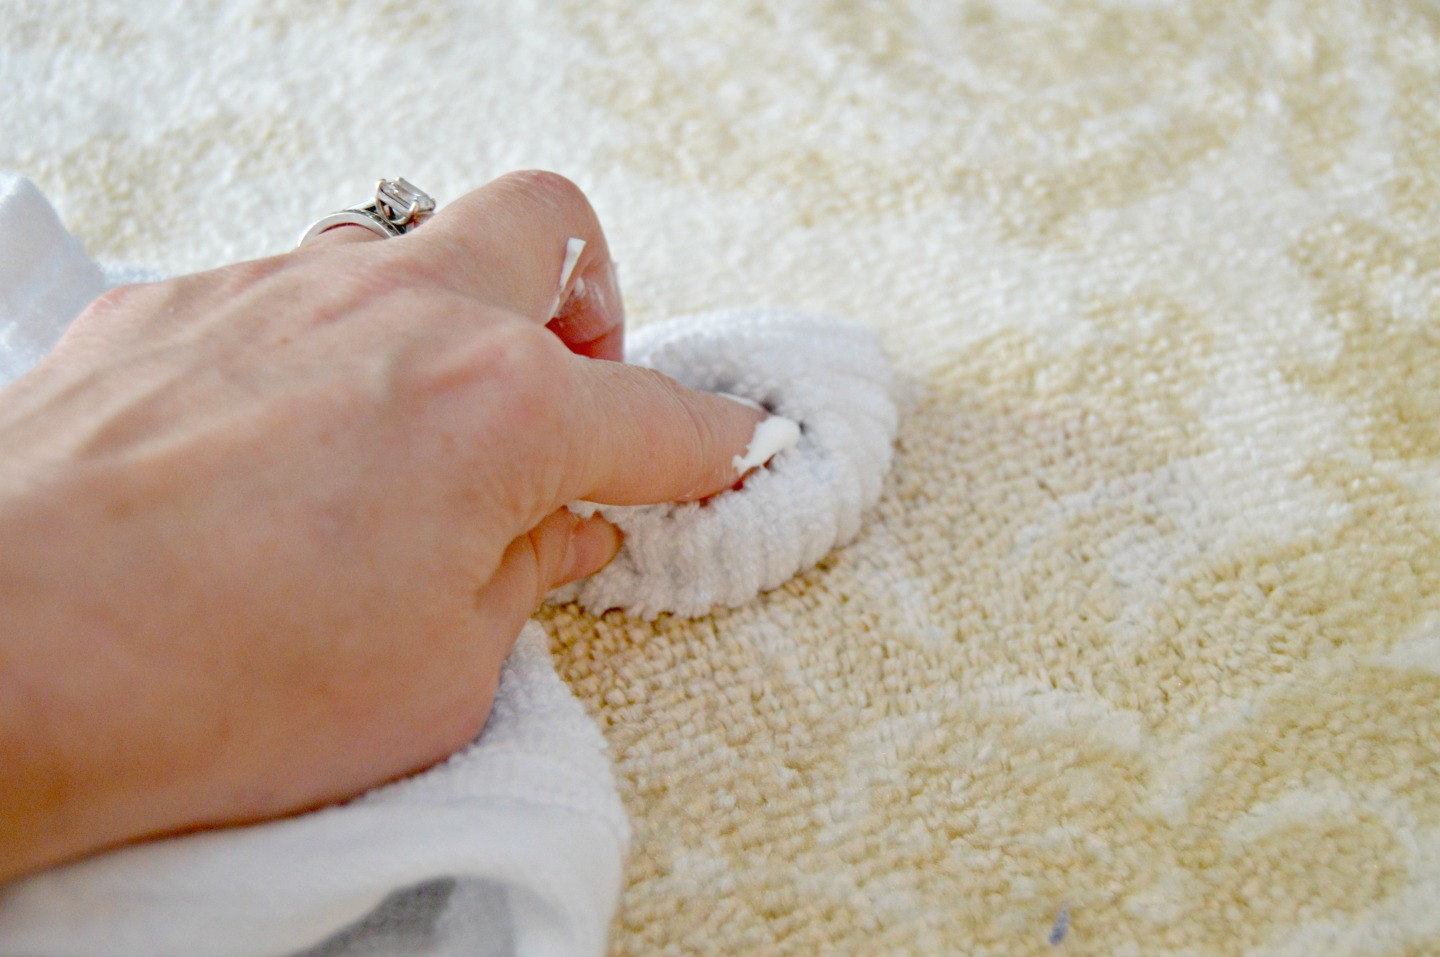 http://www.mom4real.com/wp-content/uploads/2016/11/how-to-remove-carpet-stains.jpg